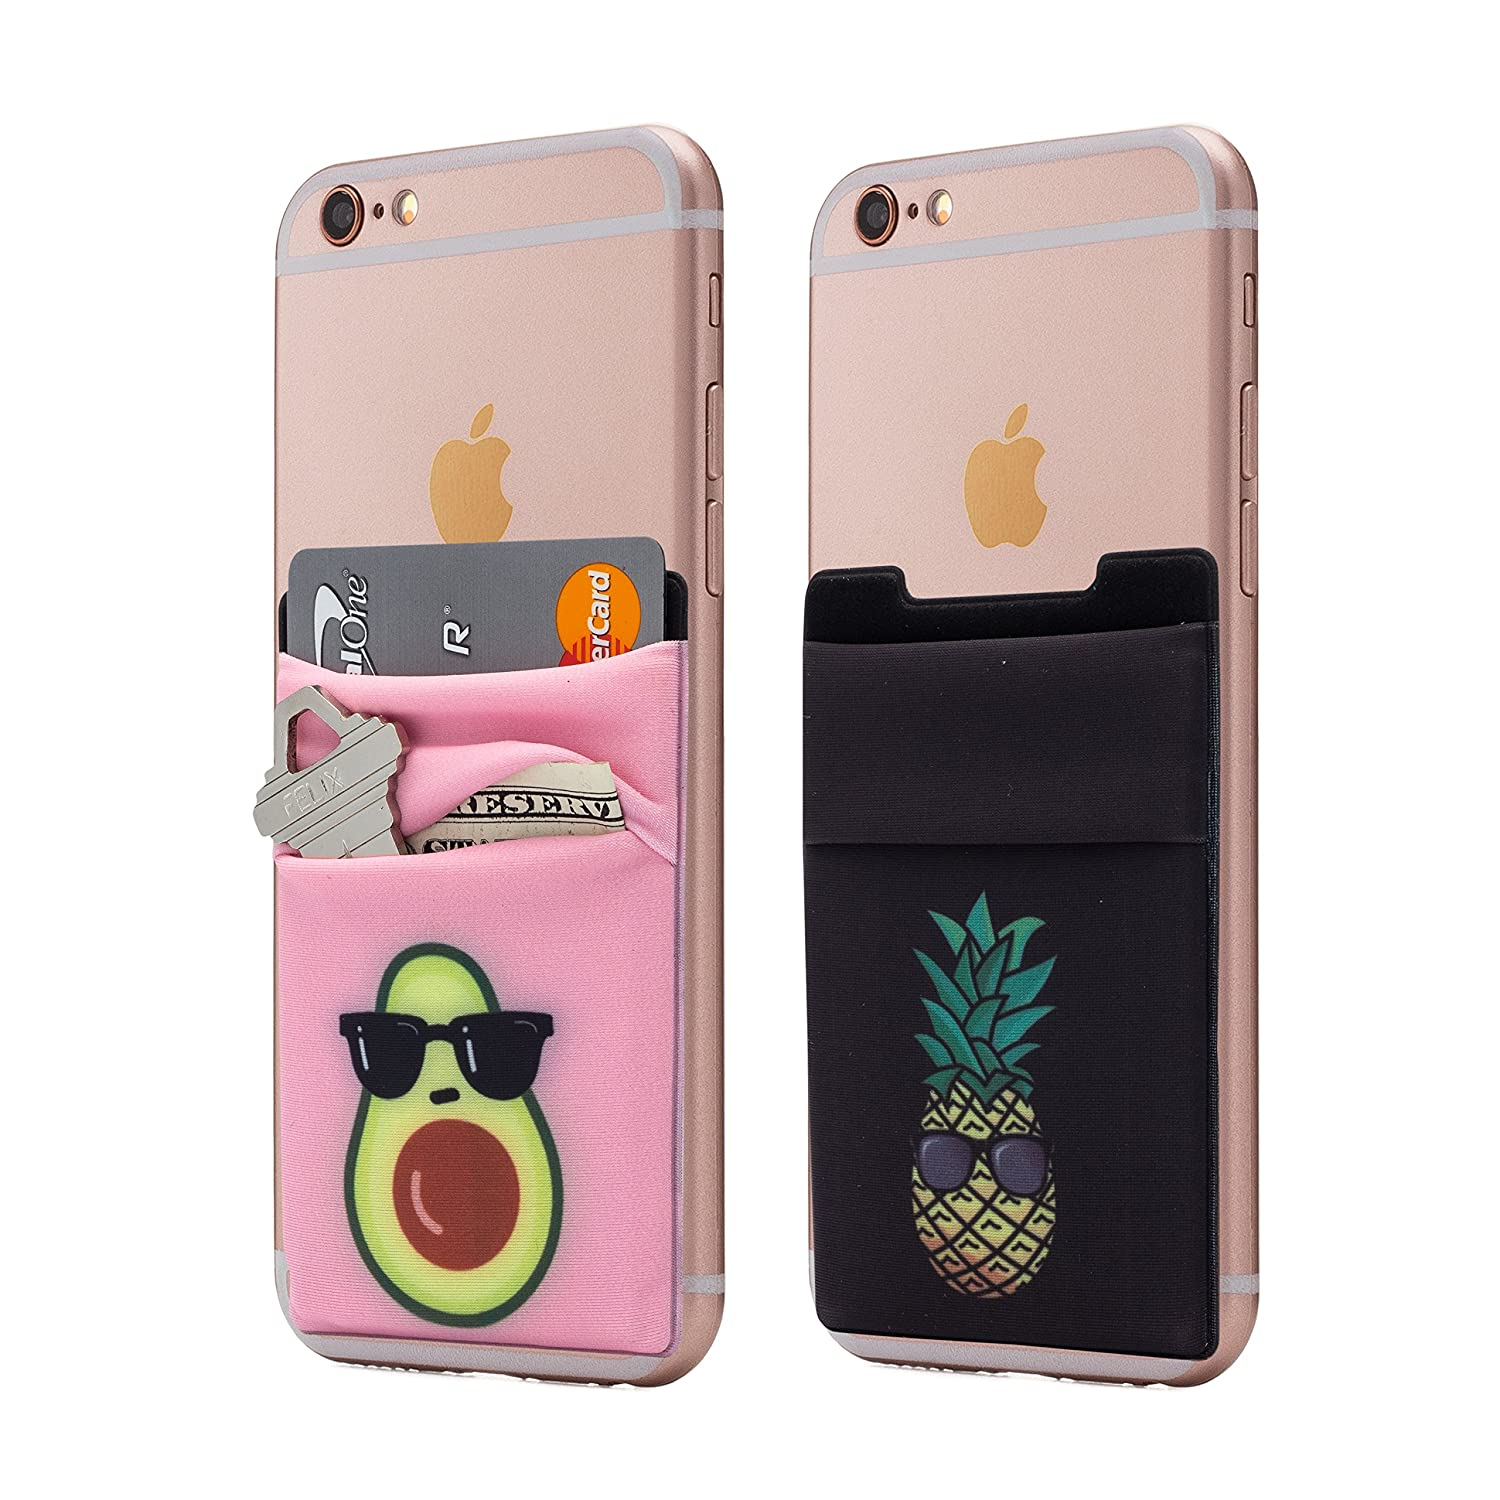 (Two) Stretchy Cell Phone Stick On Wallet Card Holder Phone Pocket For iPhone, Android and all smartphones. (avopine) Cardly